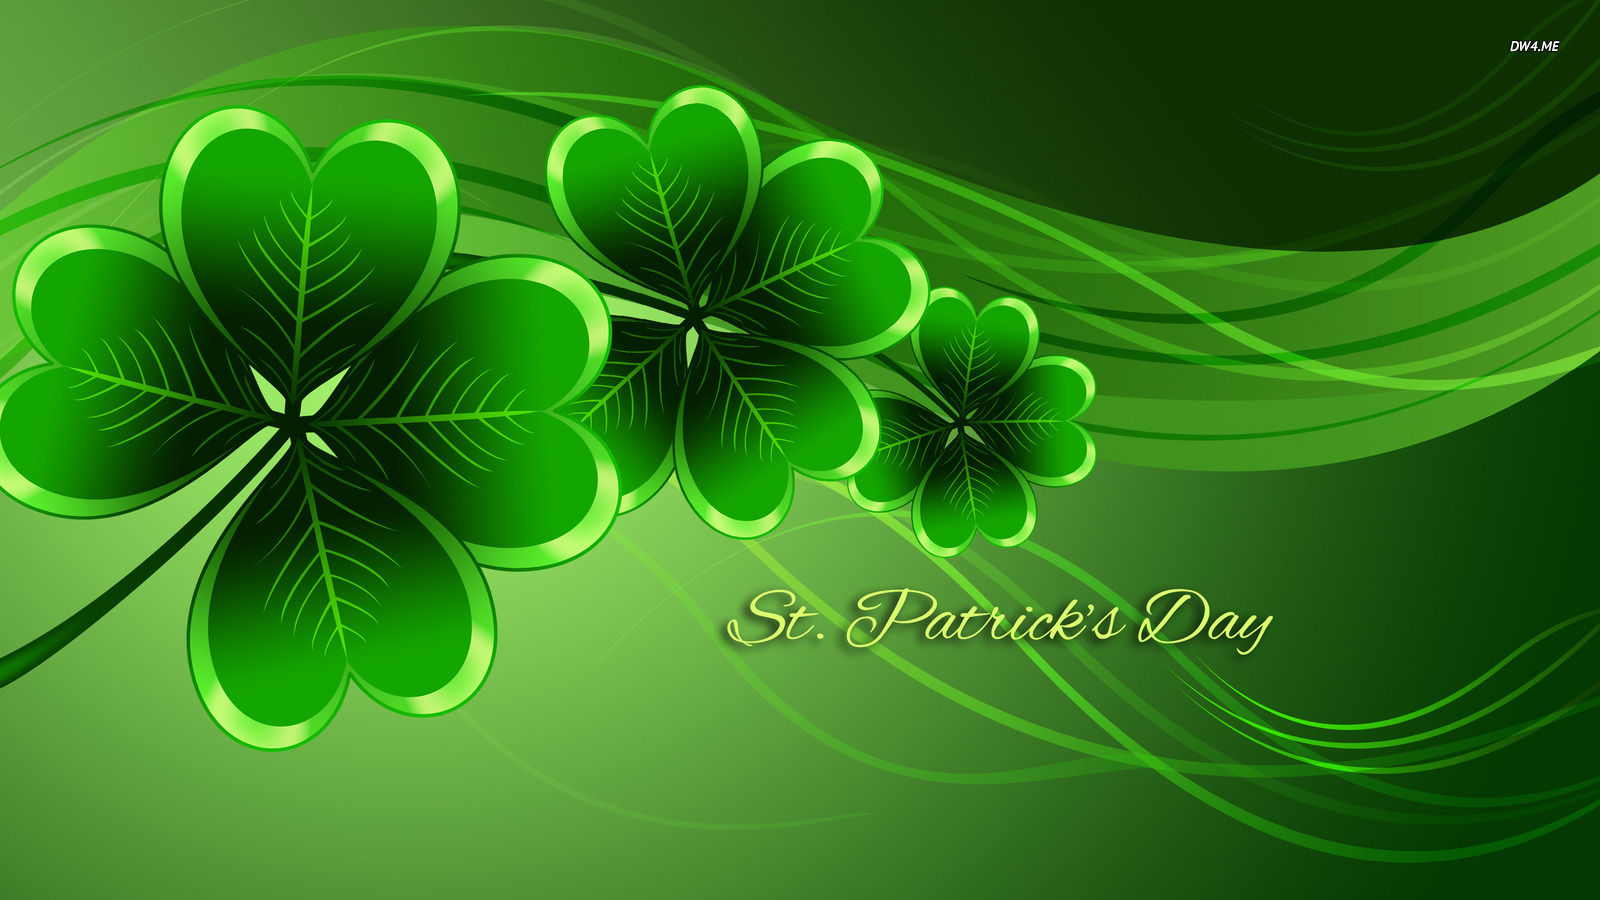 49] St Patricks Day Wallpaper Backgrounds on WallpaperSafari 1600x900